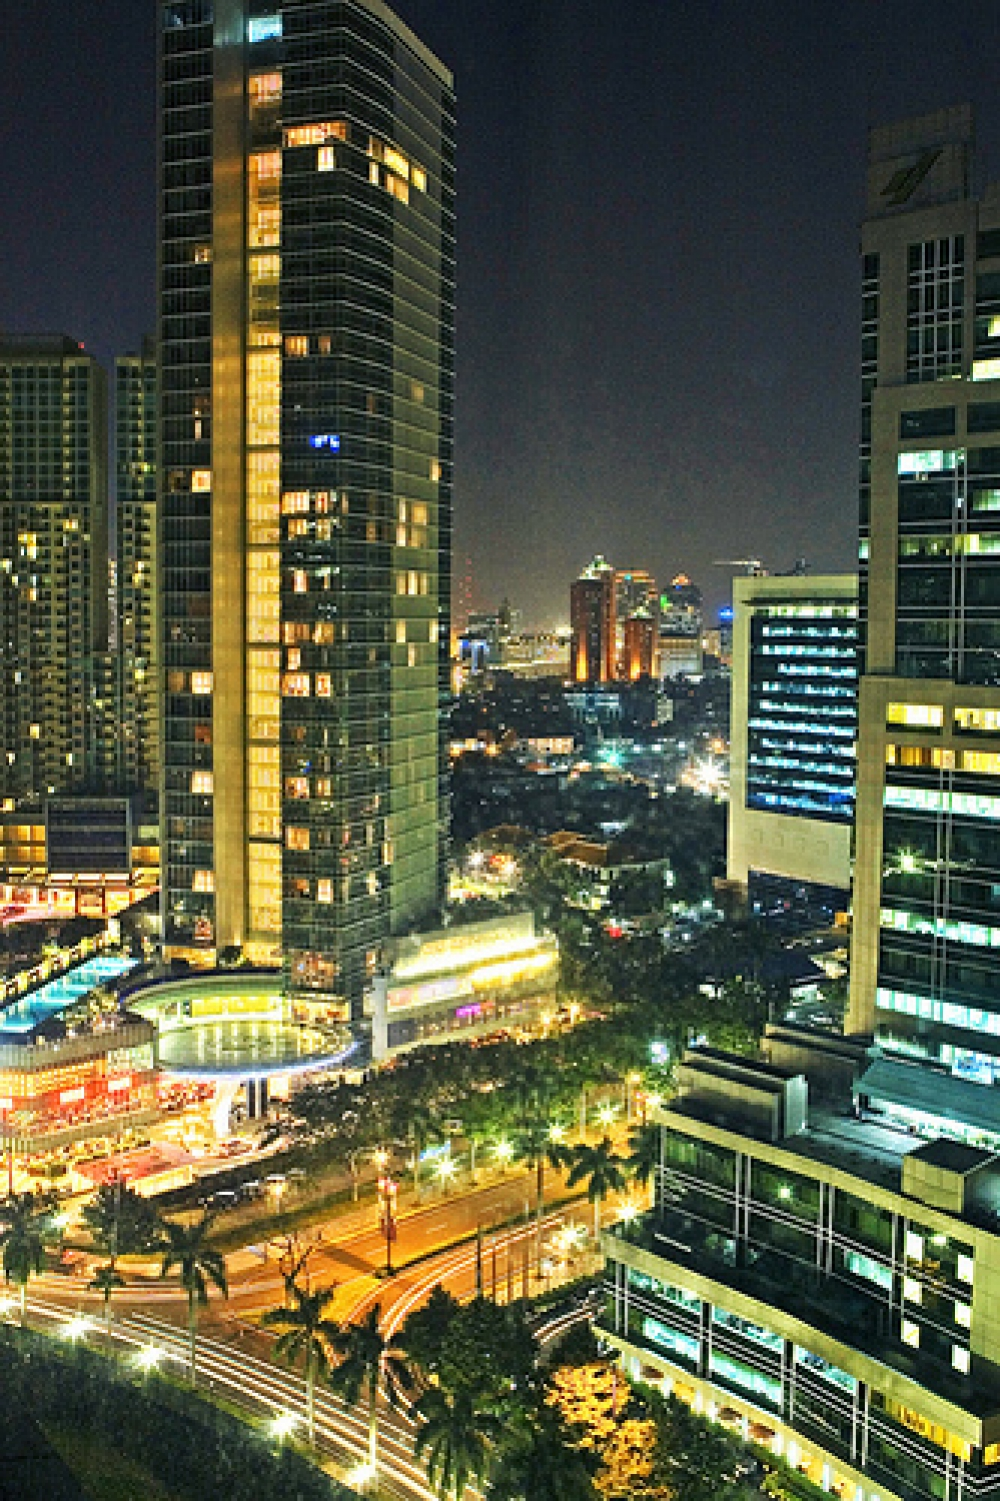 33 billion reasons to invest in Indonesia